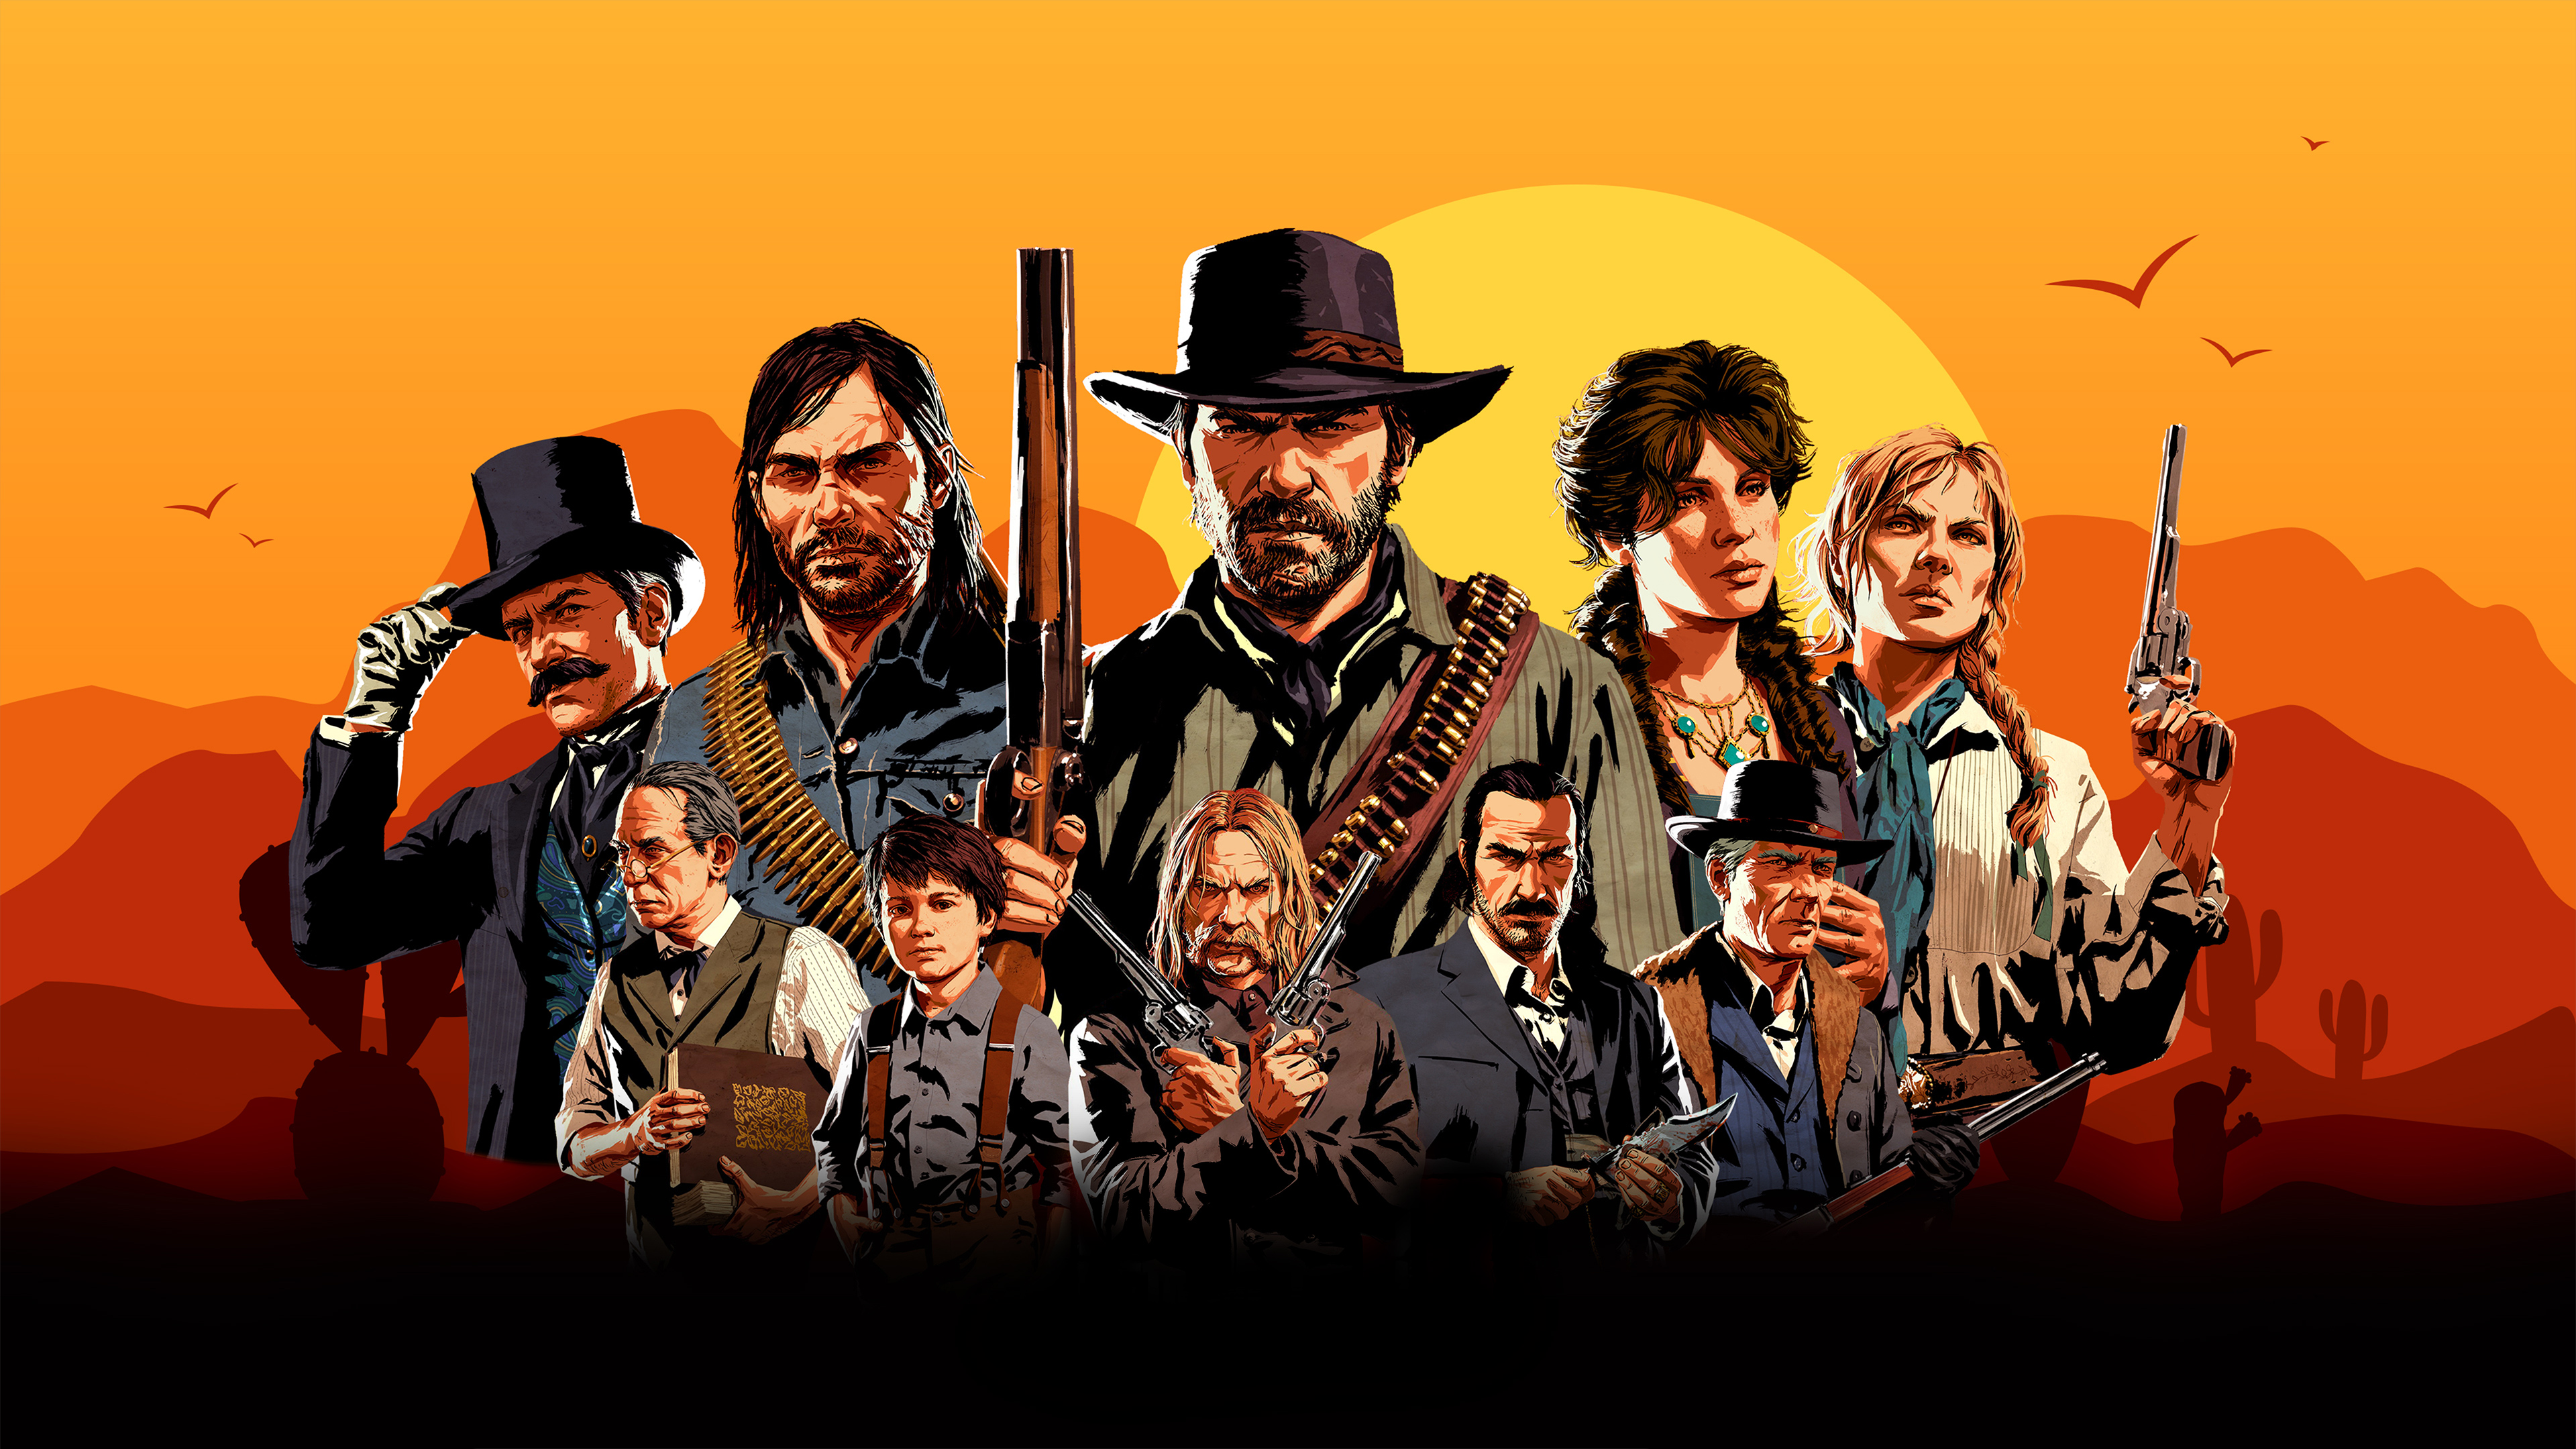 Red Dead Redemption 2 Video Game 4k, HD Games, 4k Wallpapers, Images, Backgrounds, Photos and ...